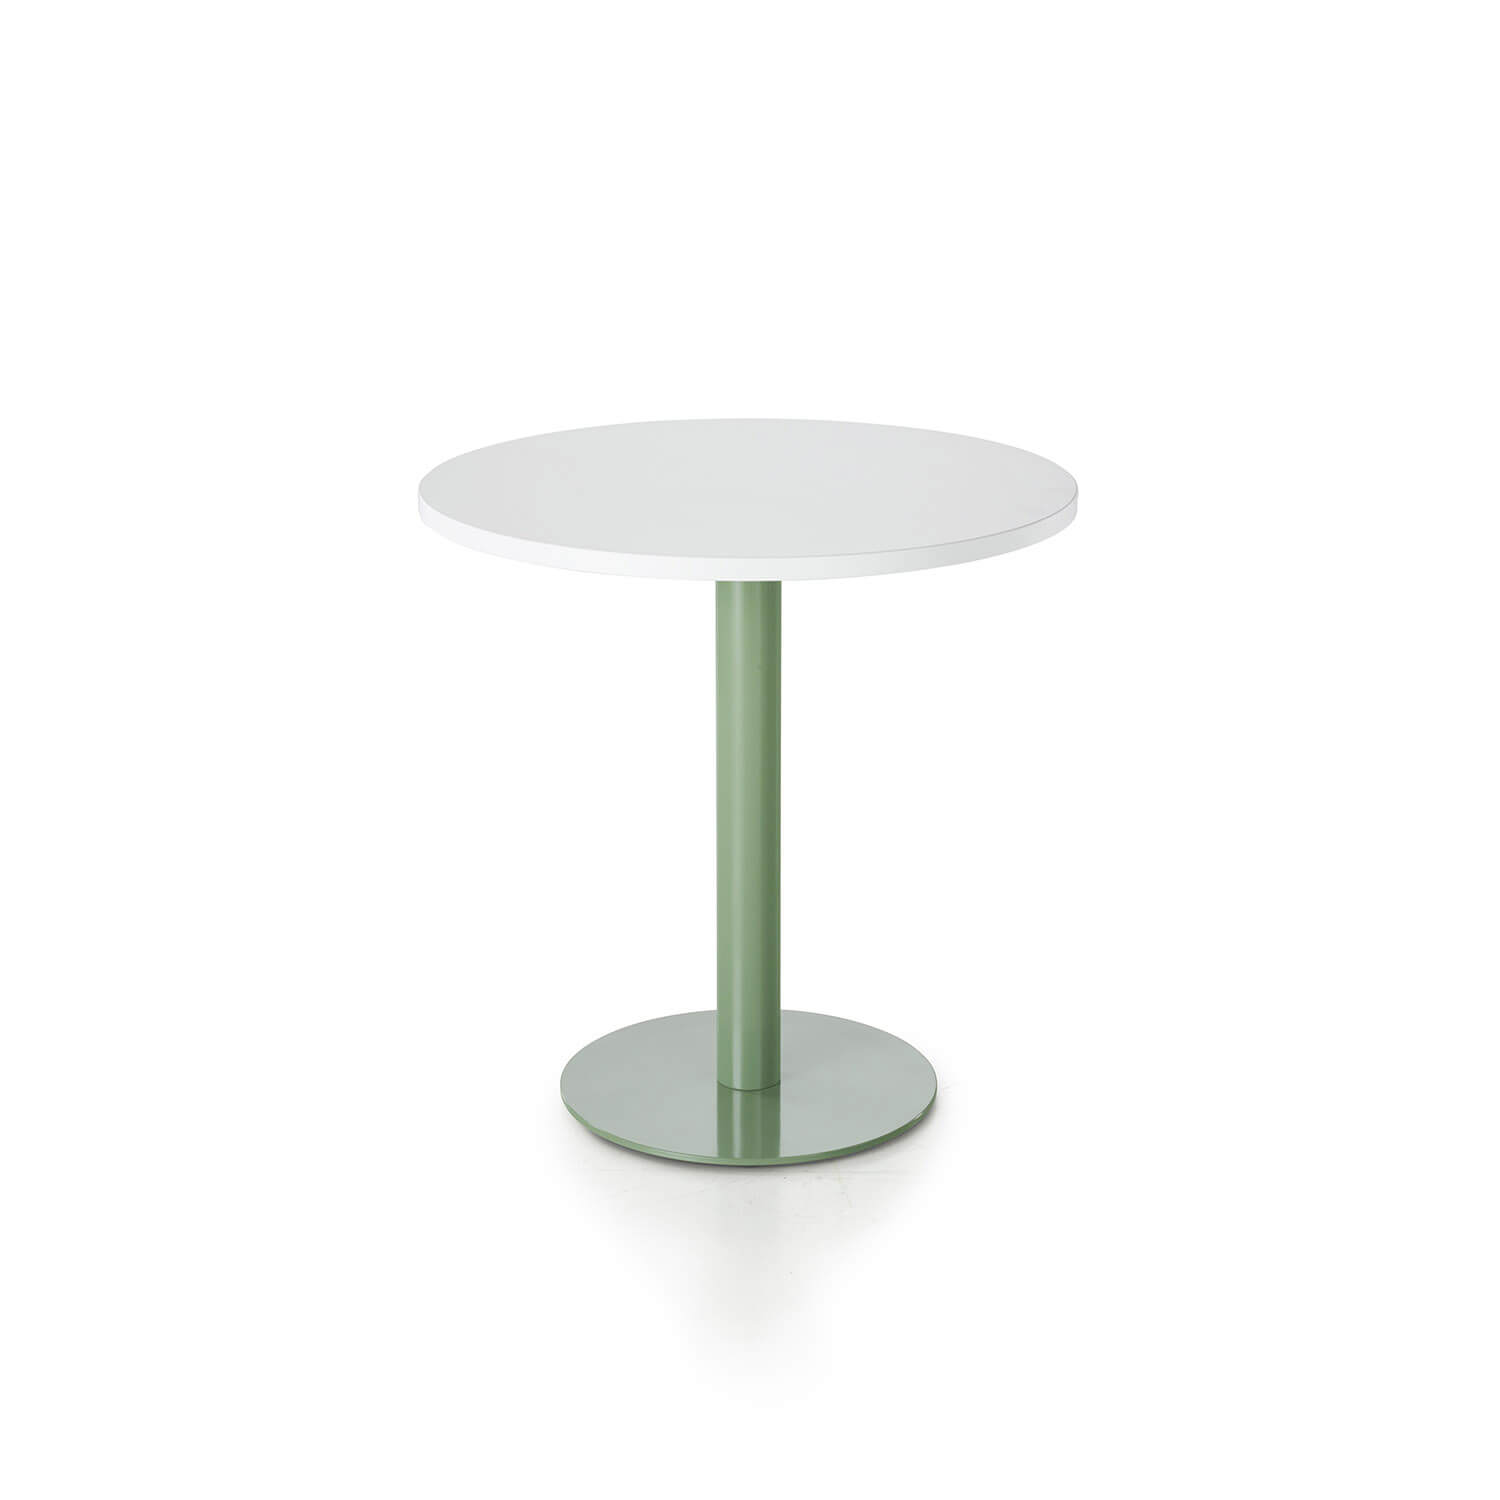 DISC TABLES6970 (5)